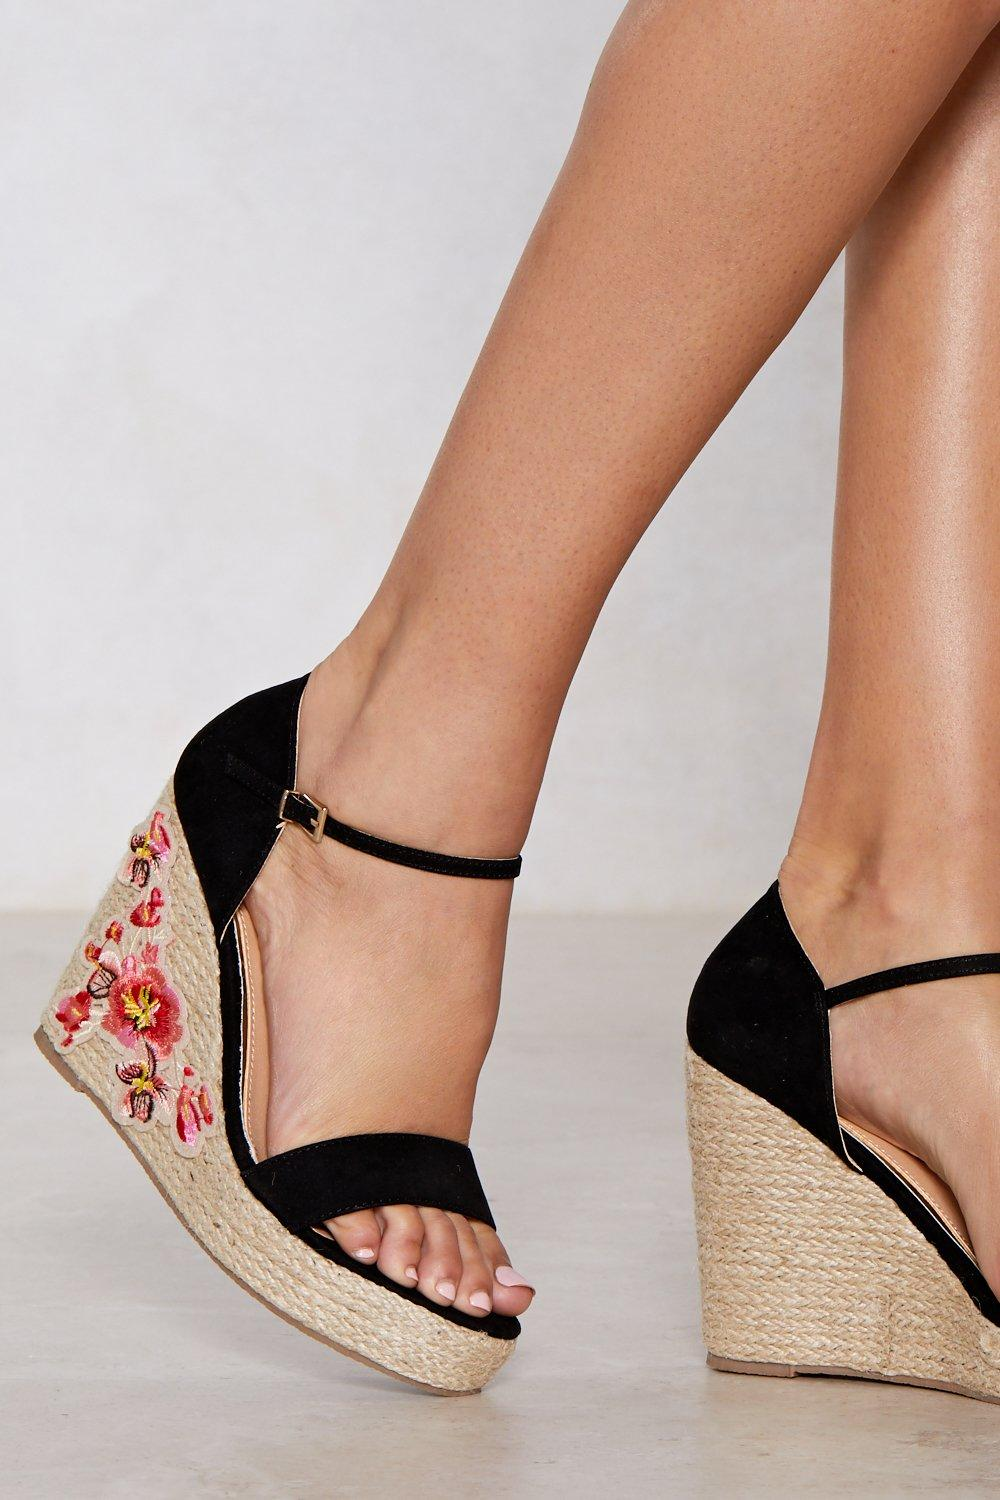 buy cheap shop visit new for sale More of a Grower Embroidered Wedge free shipping visa payment I7fuG